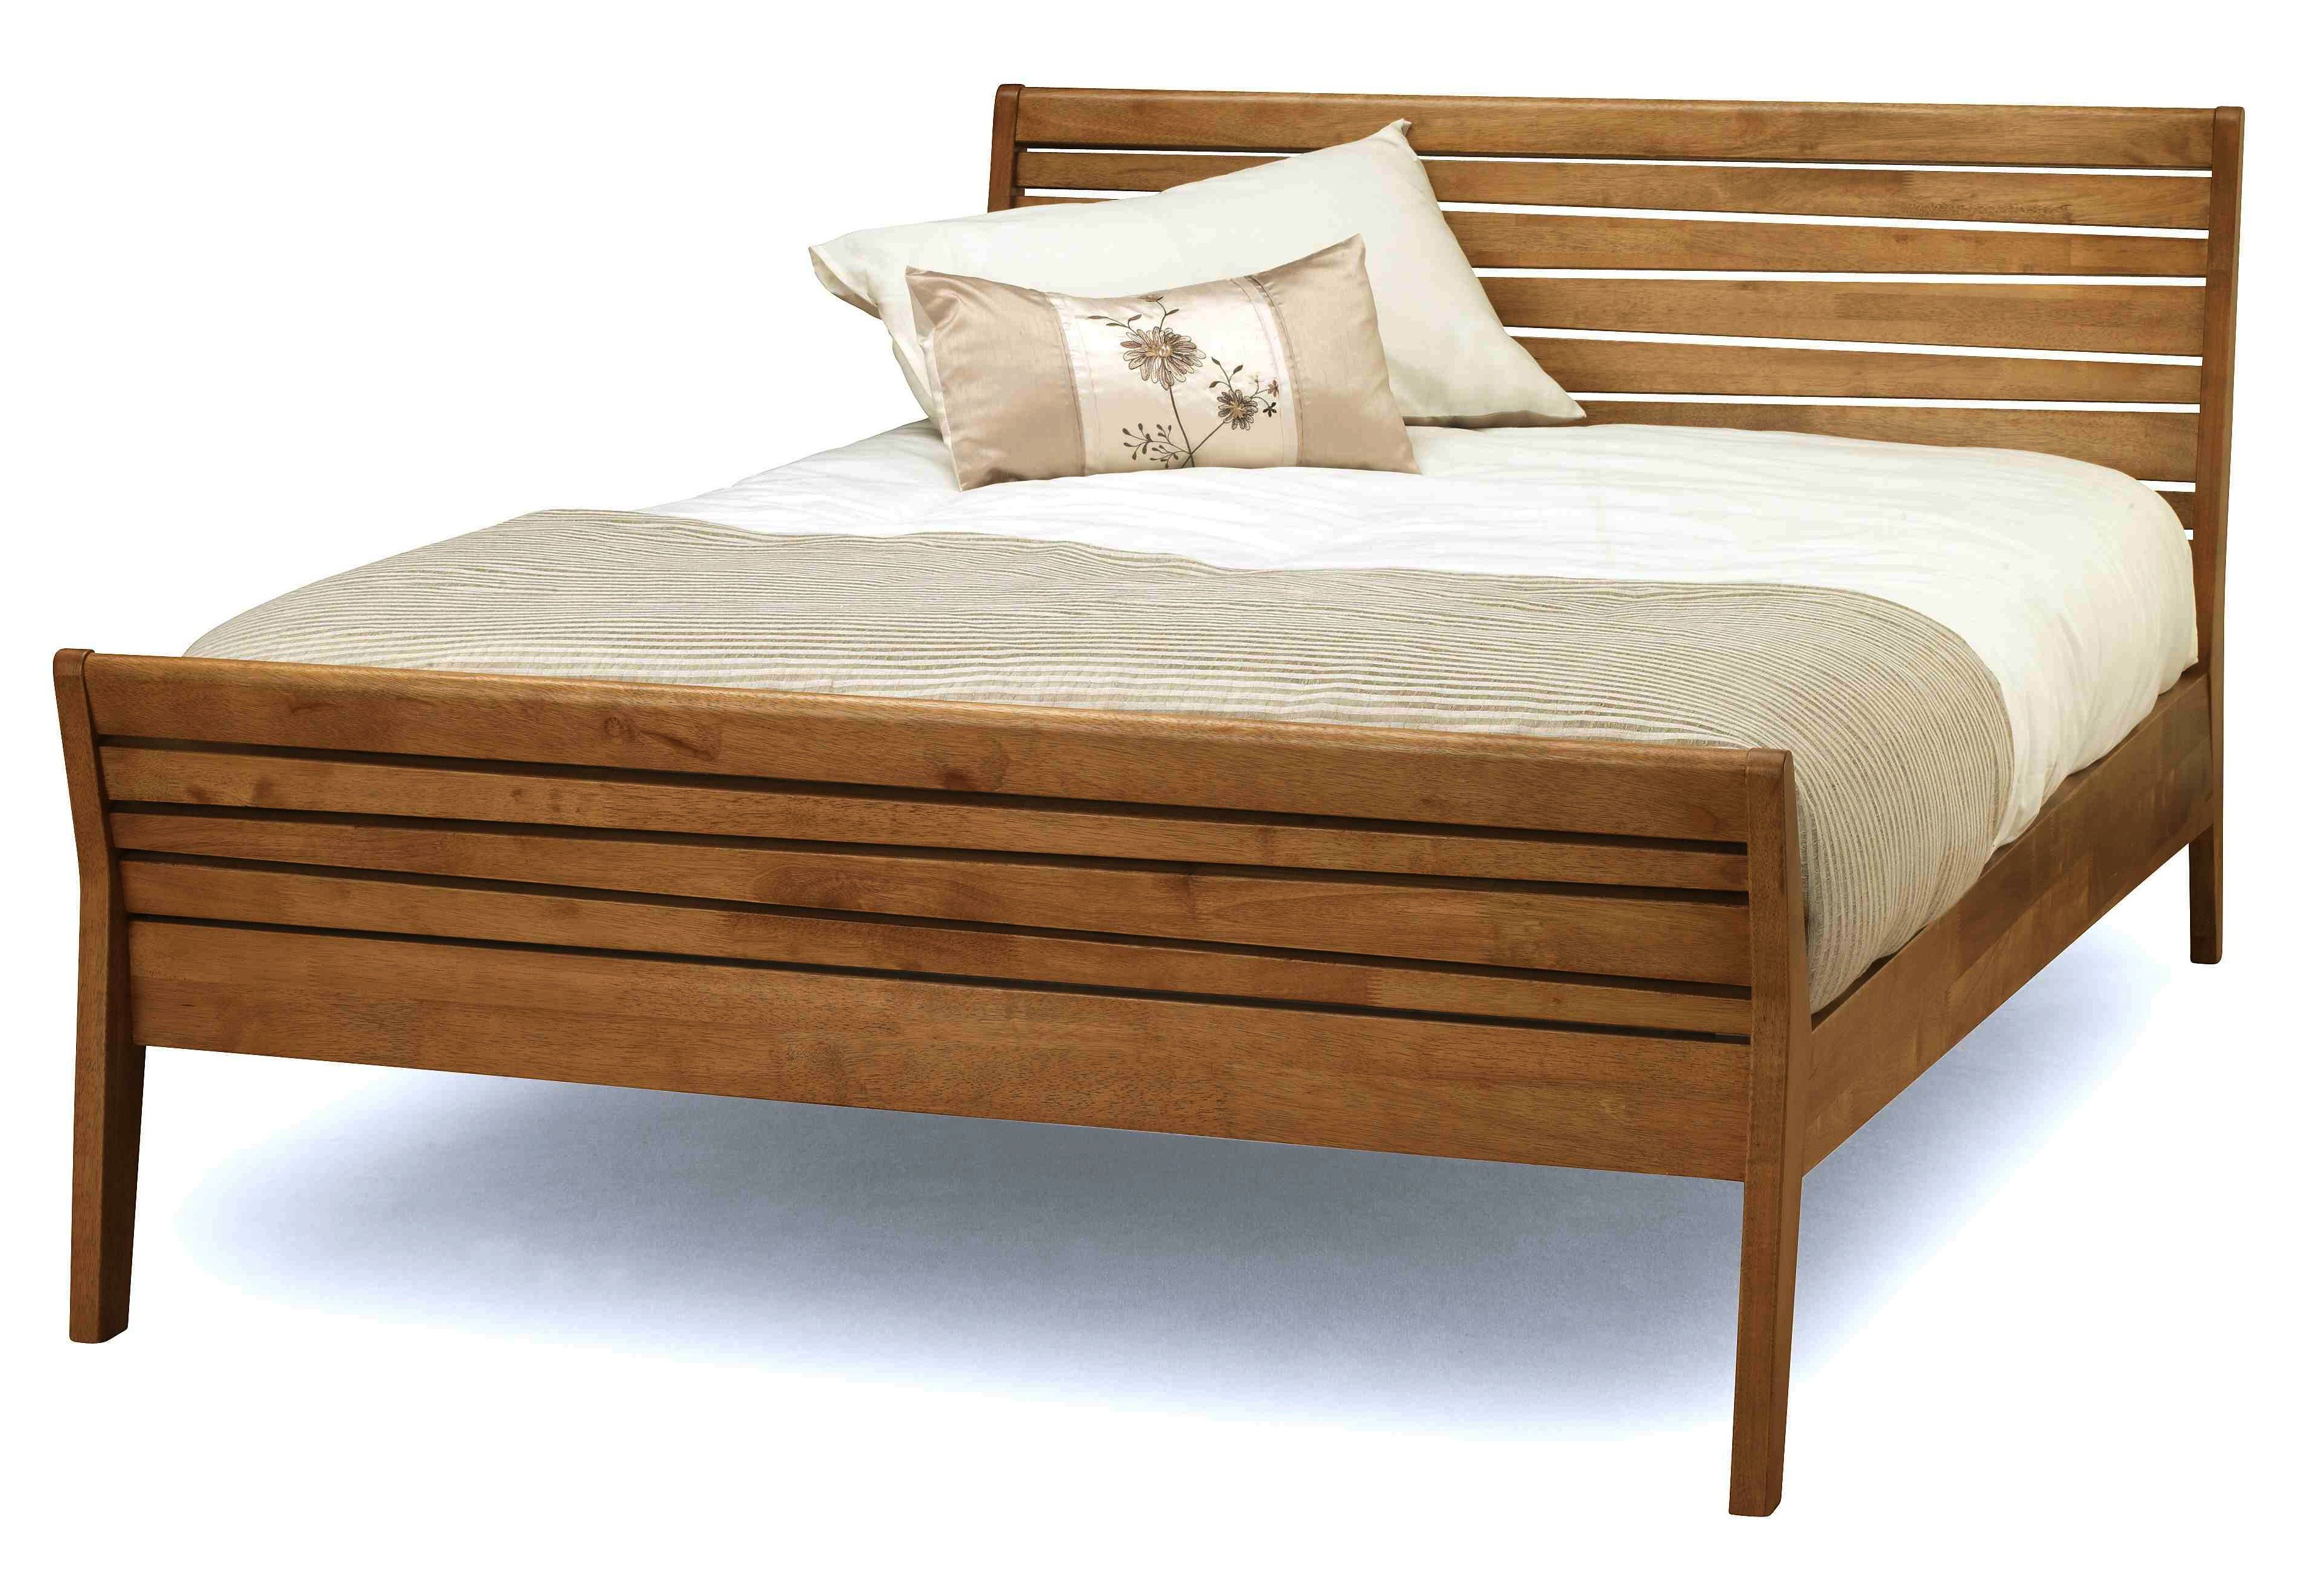 Furniture clipart wooden bed Extremely 2017 Beds Furniture Wooden